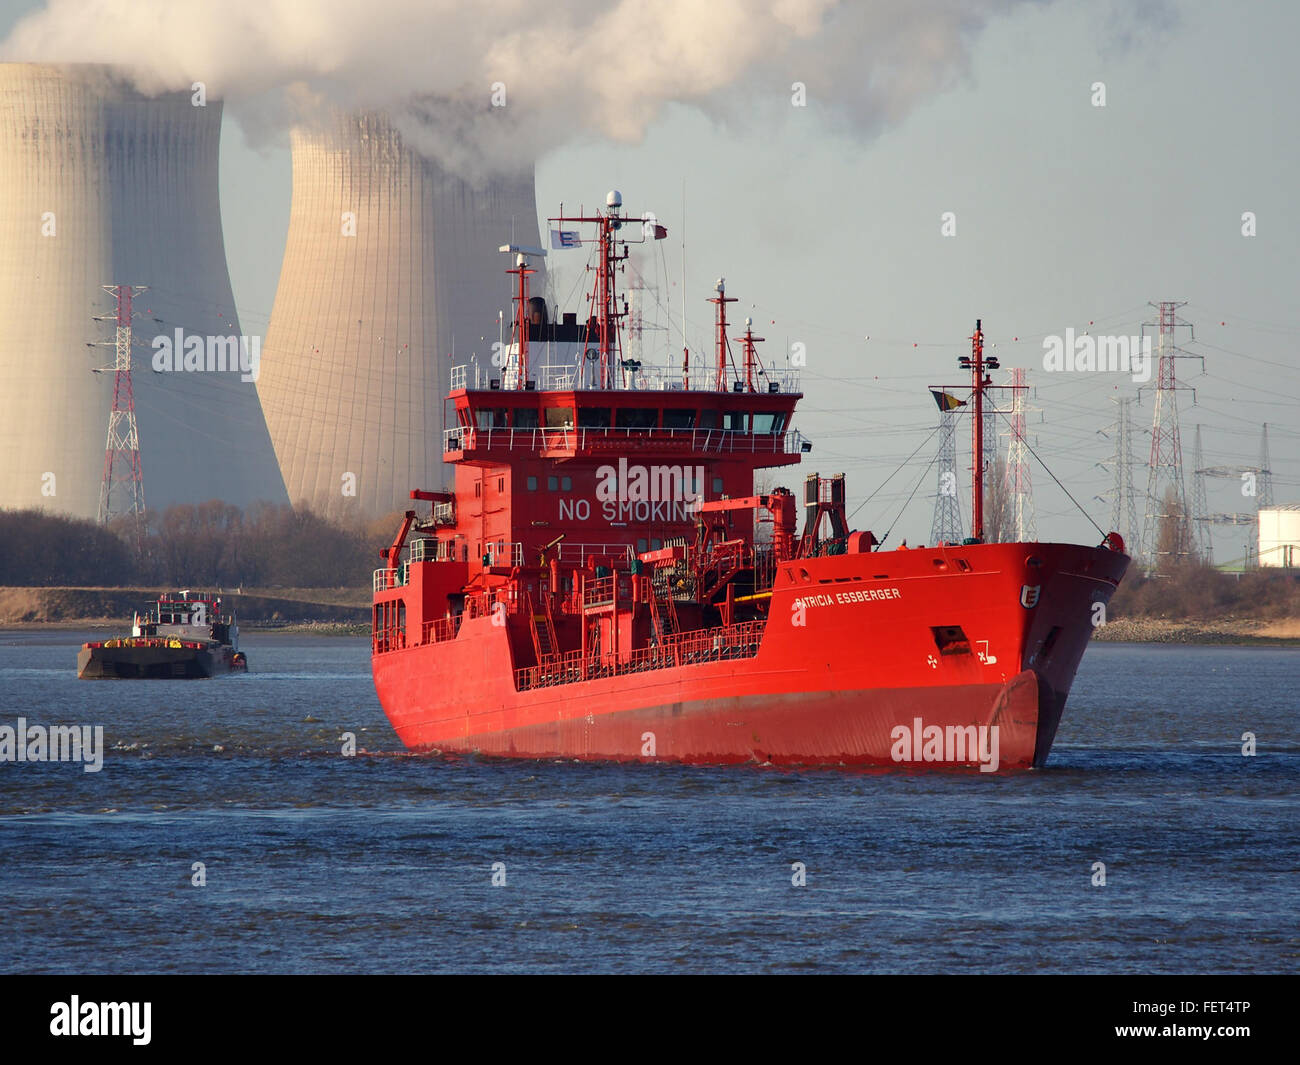 Patricia Essberger (ship, 2000) IMO 9212486 Schelde, Port of Antwerp pic1 - Stock Image